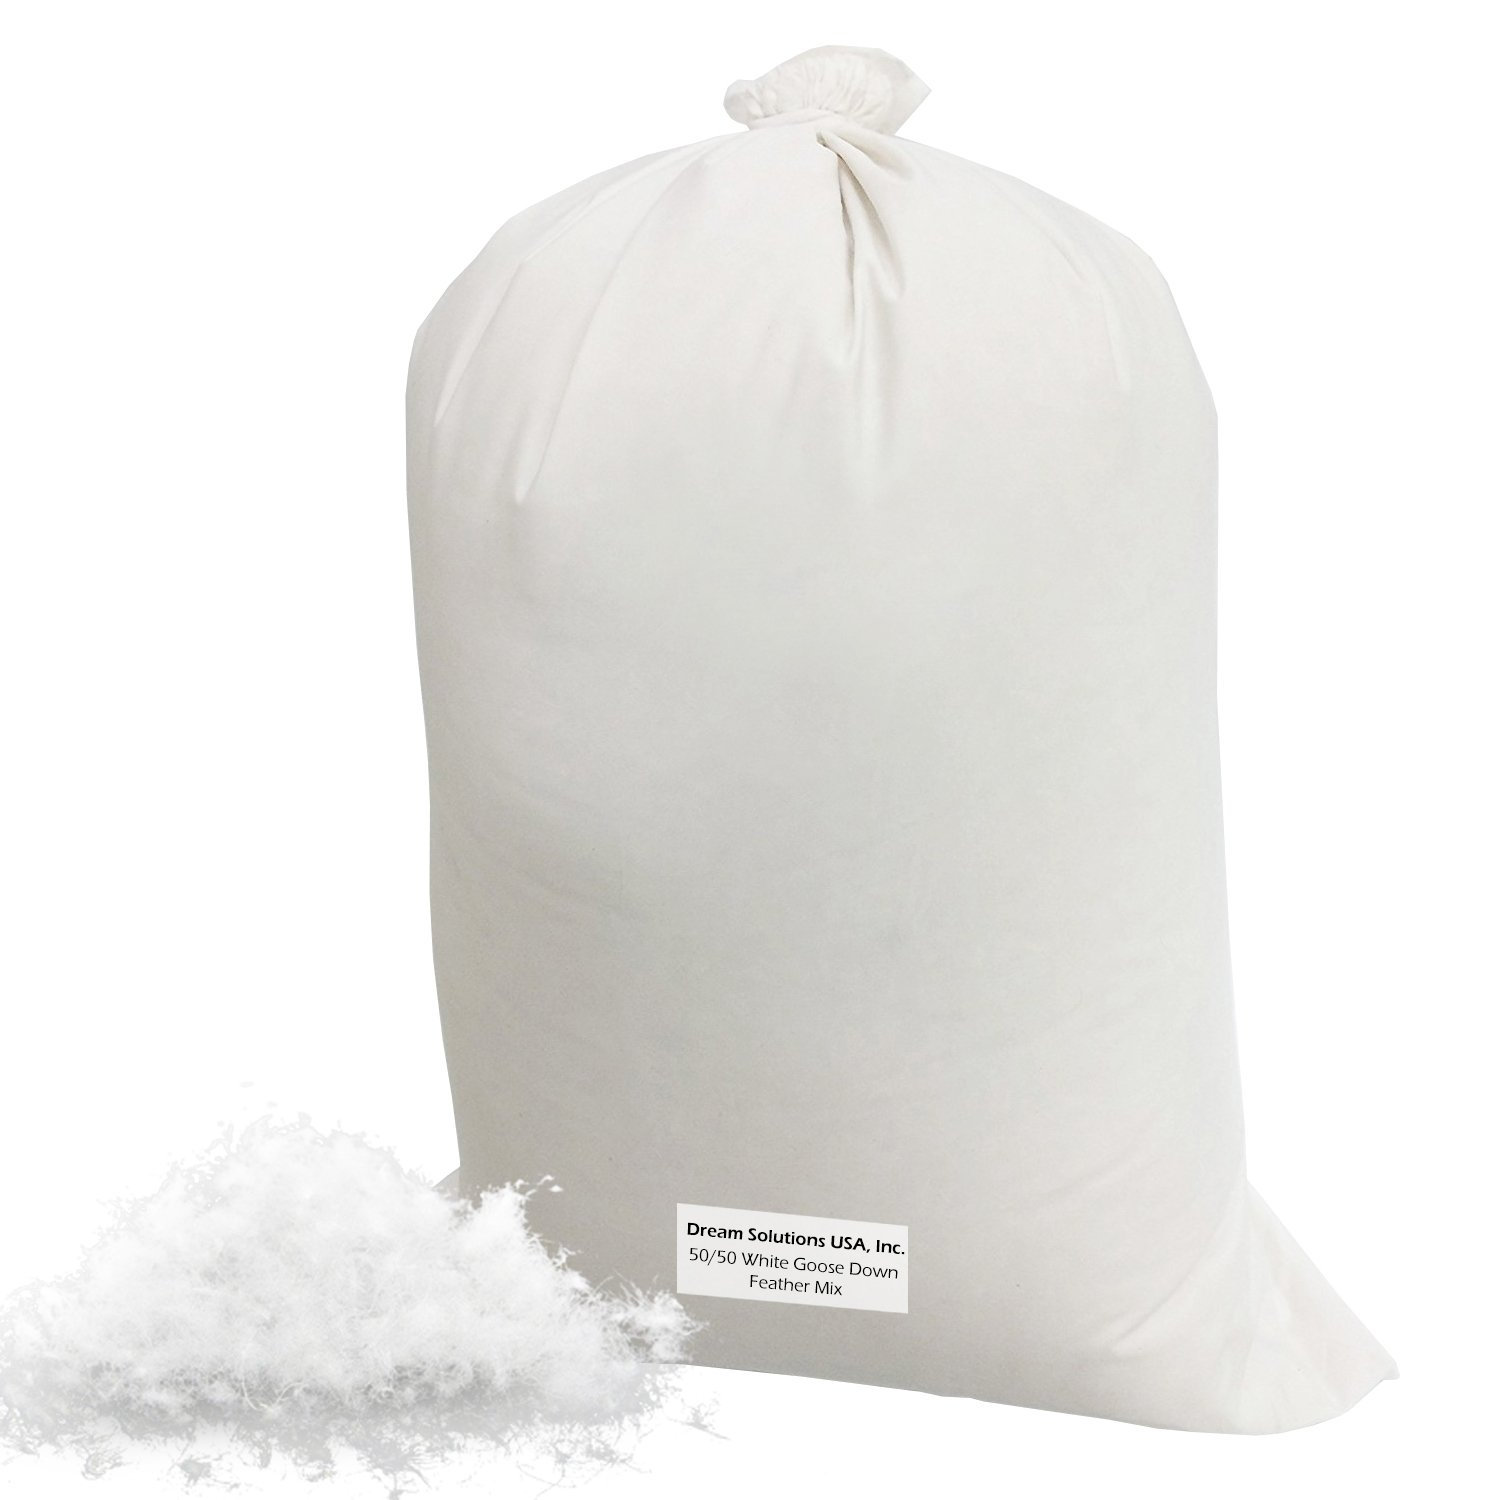 Dream Solutions USA Brand Bulk Goose Down Pillow Feathers - Most popular Mix 50/50 White (1 LB) - Fill Comforters, Pillows, Jackets and More - Ultra-Plush Hungarian Softness 5050WGDF1LB